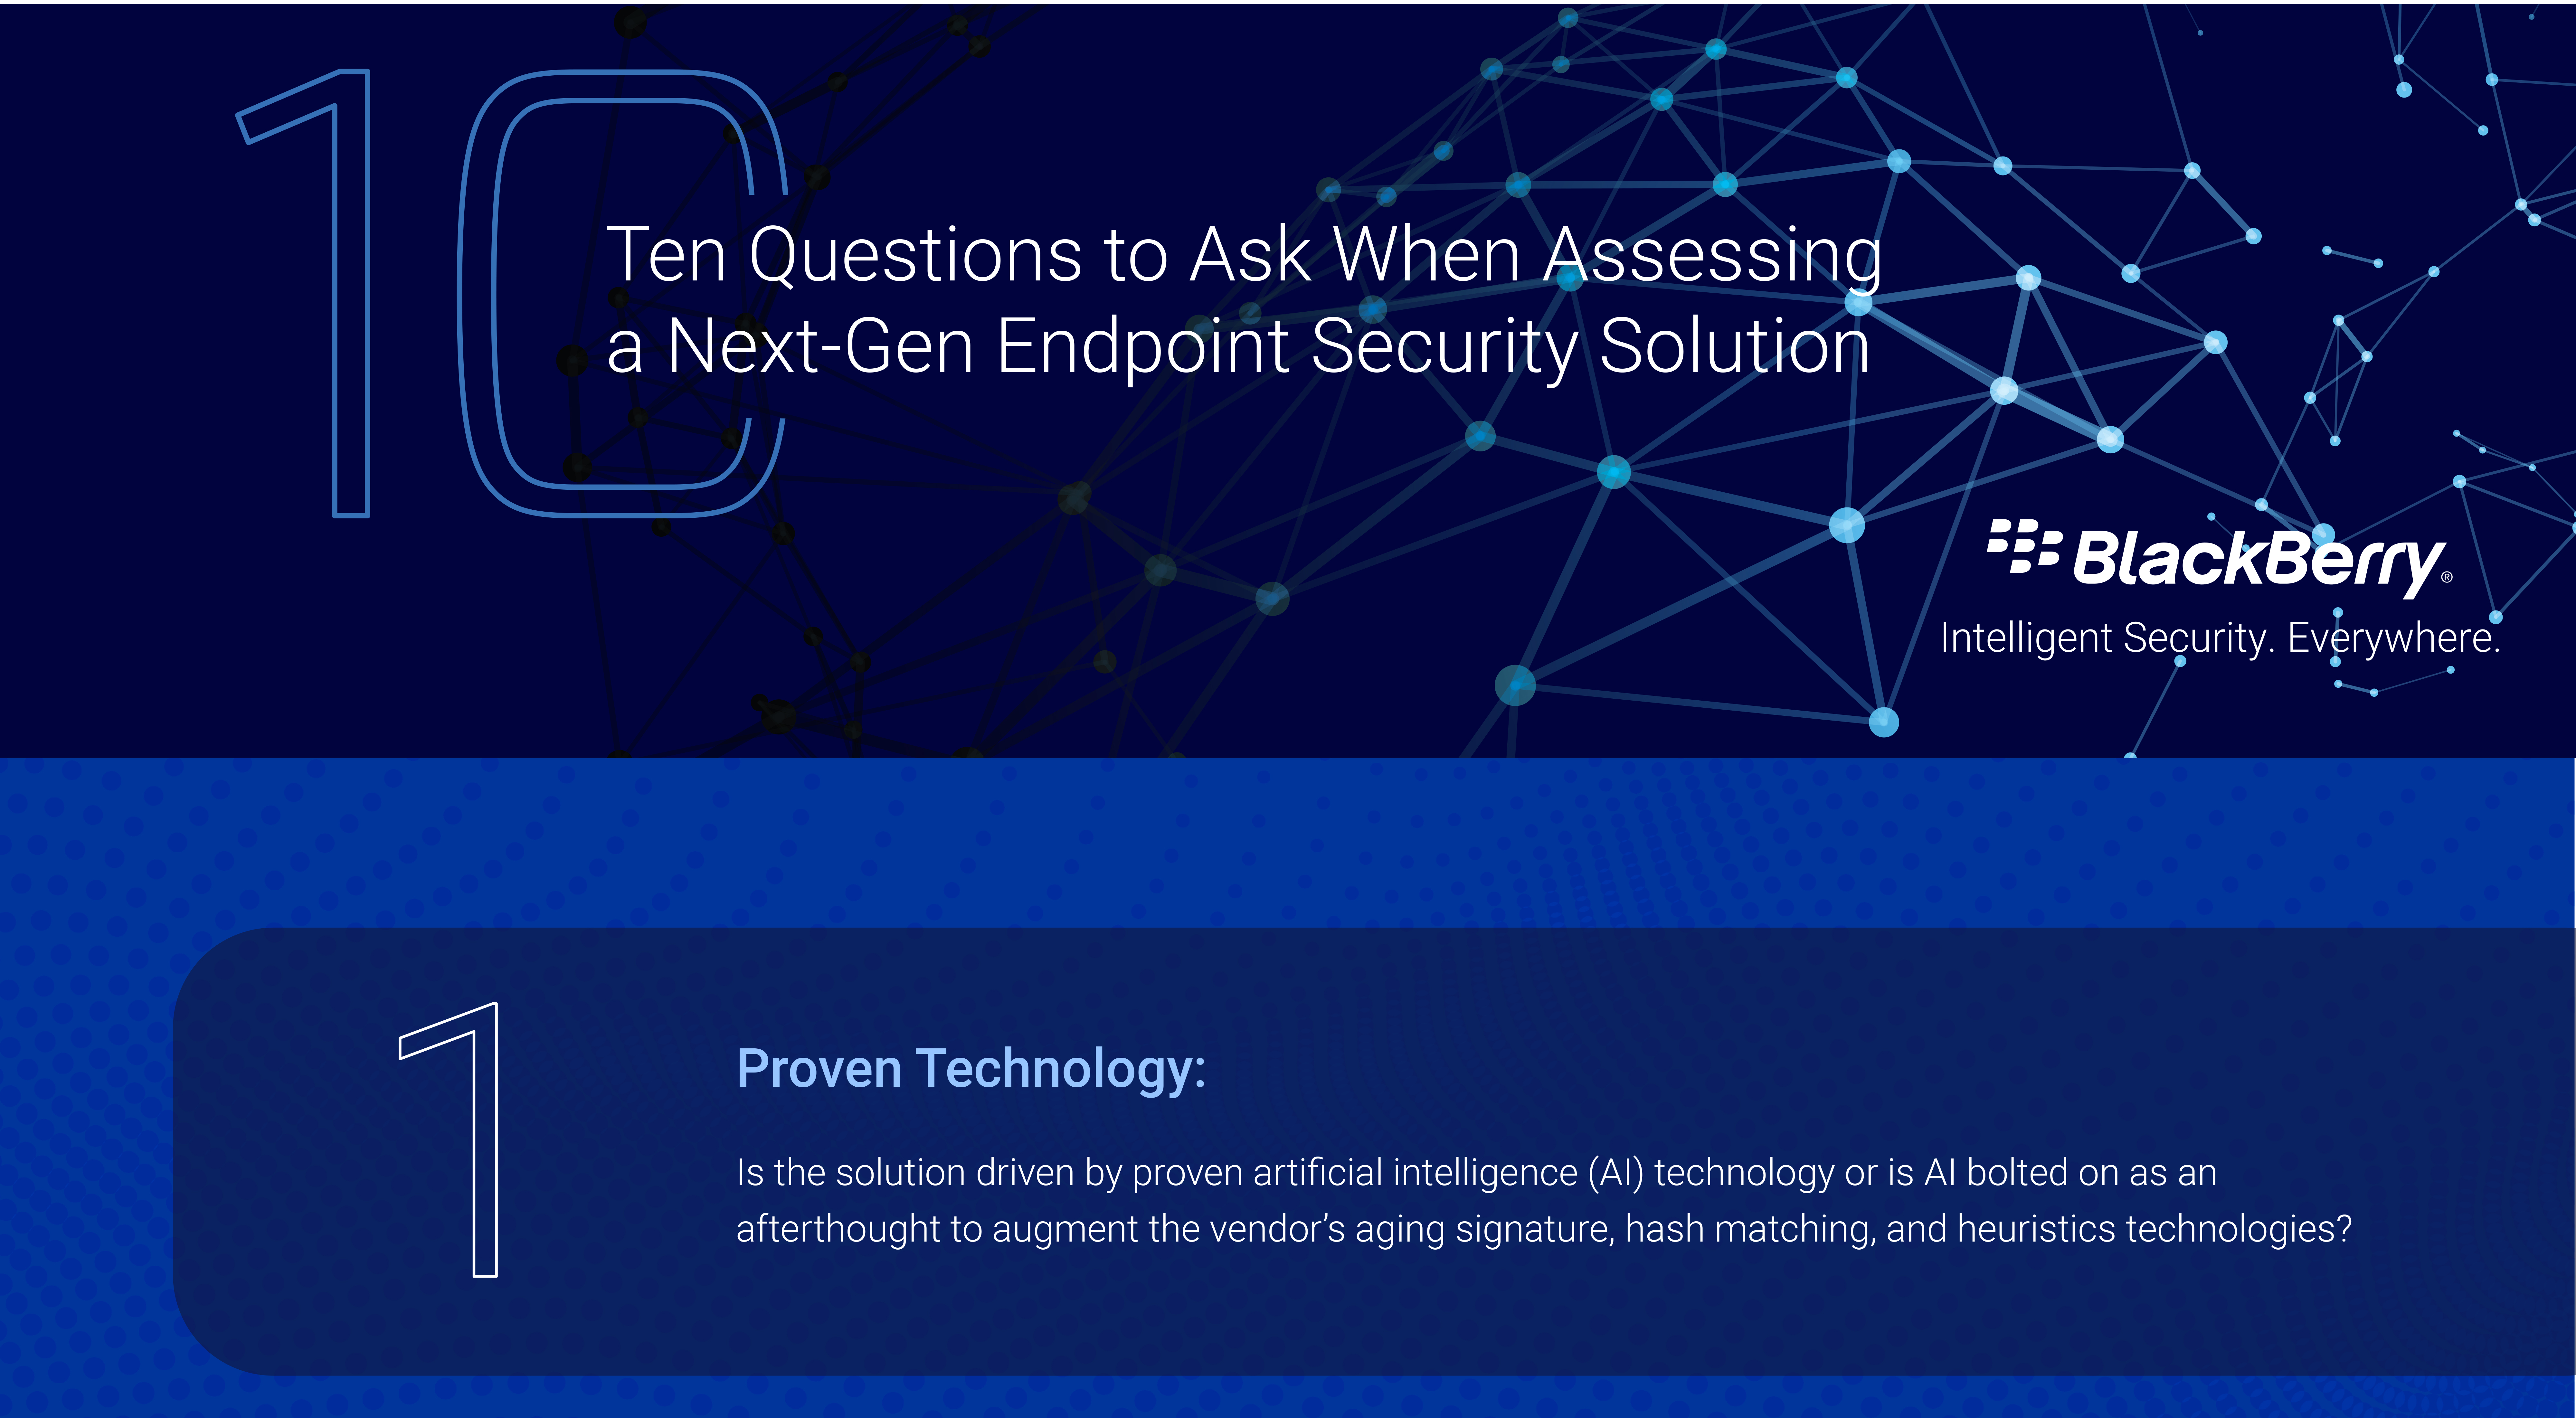 Ten questions to ask when assessing a next-gen endpoint security solution